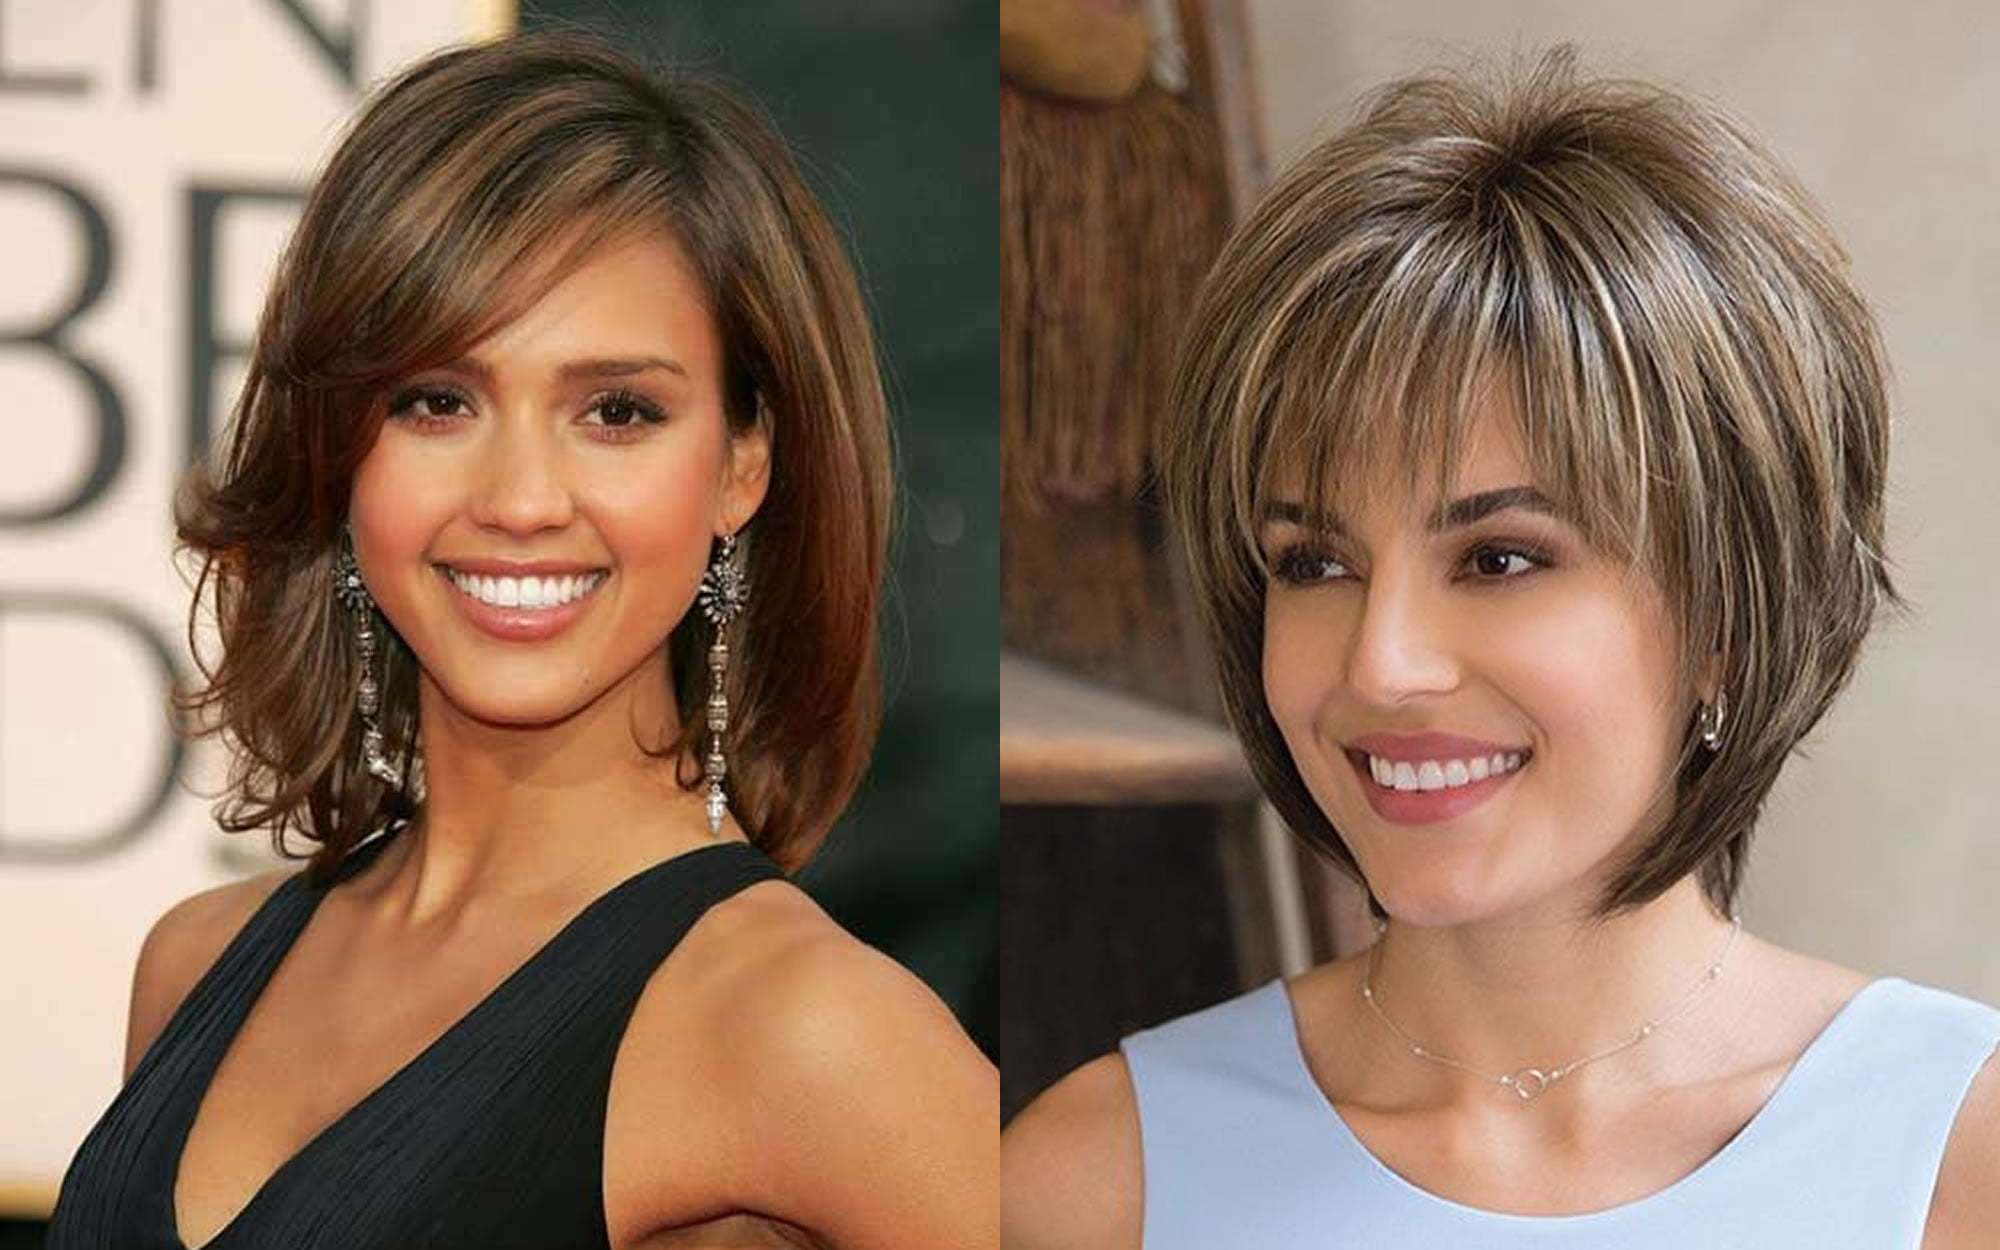 Bob Haircut 2018 For Women & Short Hair Colors